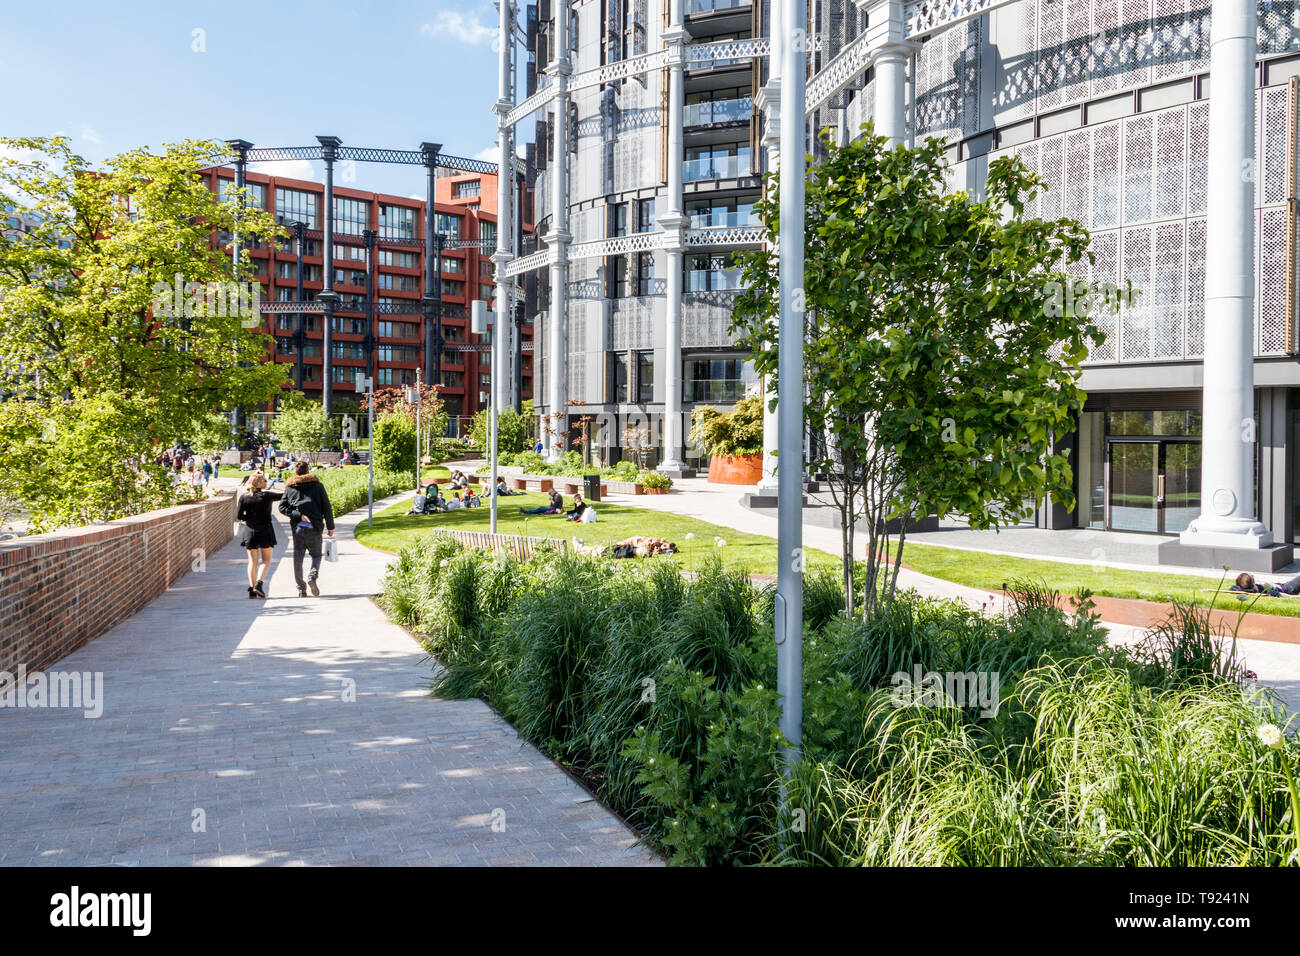 Bagley Walk by the Regent's Canal towpath at the newly redeveloped King's Cross, London, UK, 2019 - Stock Image